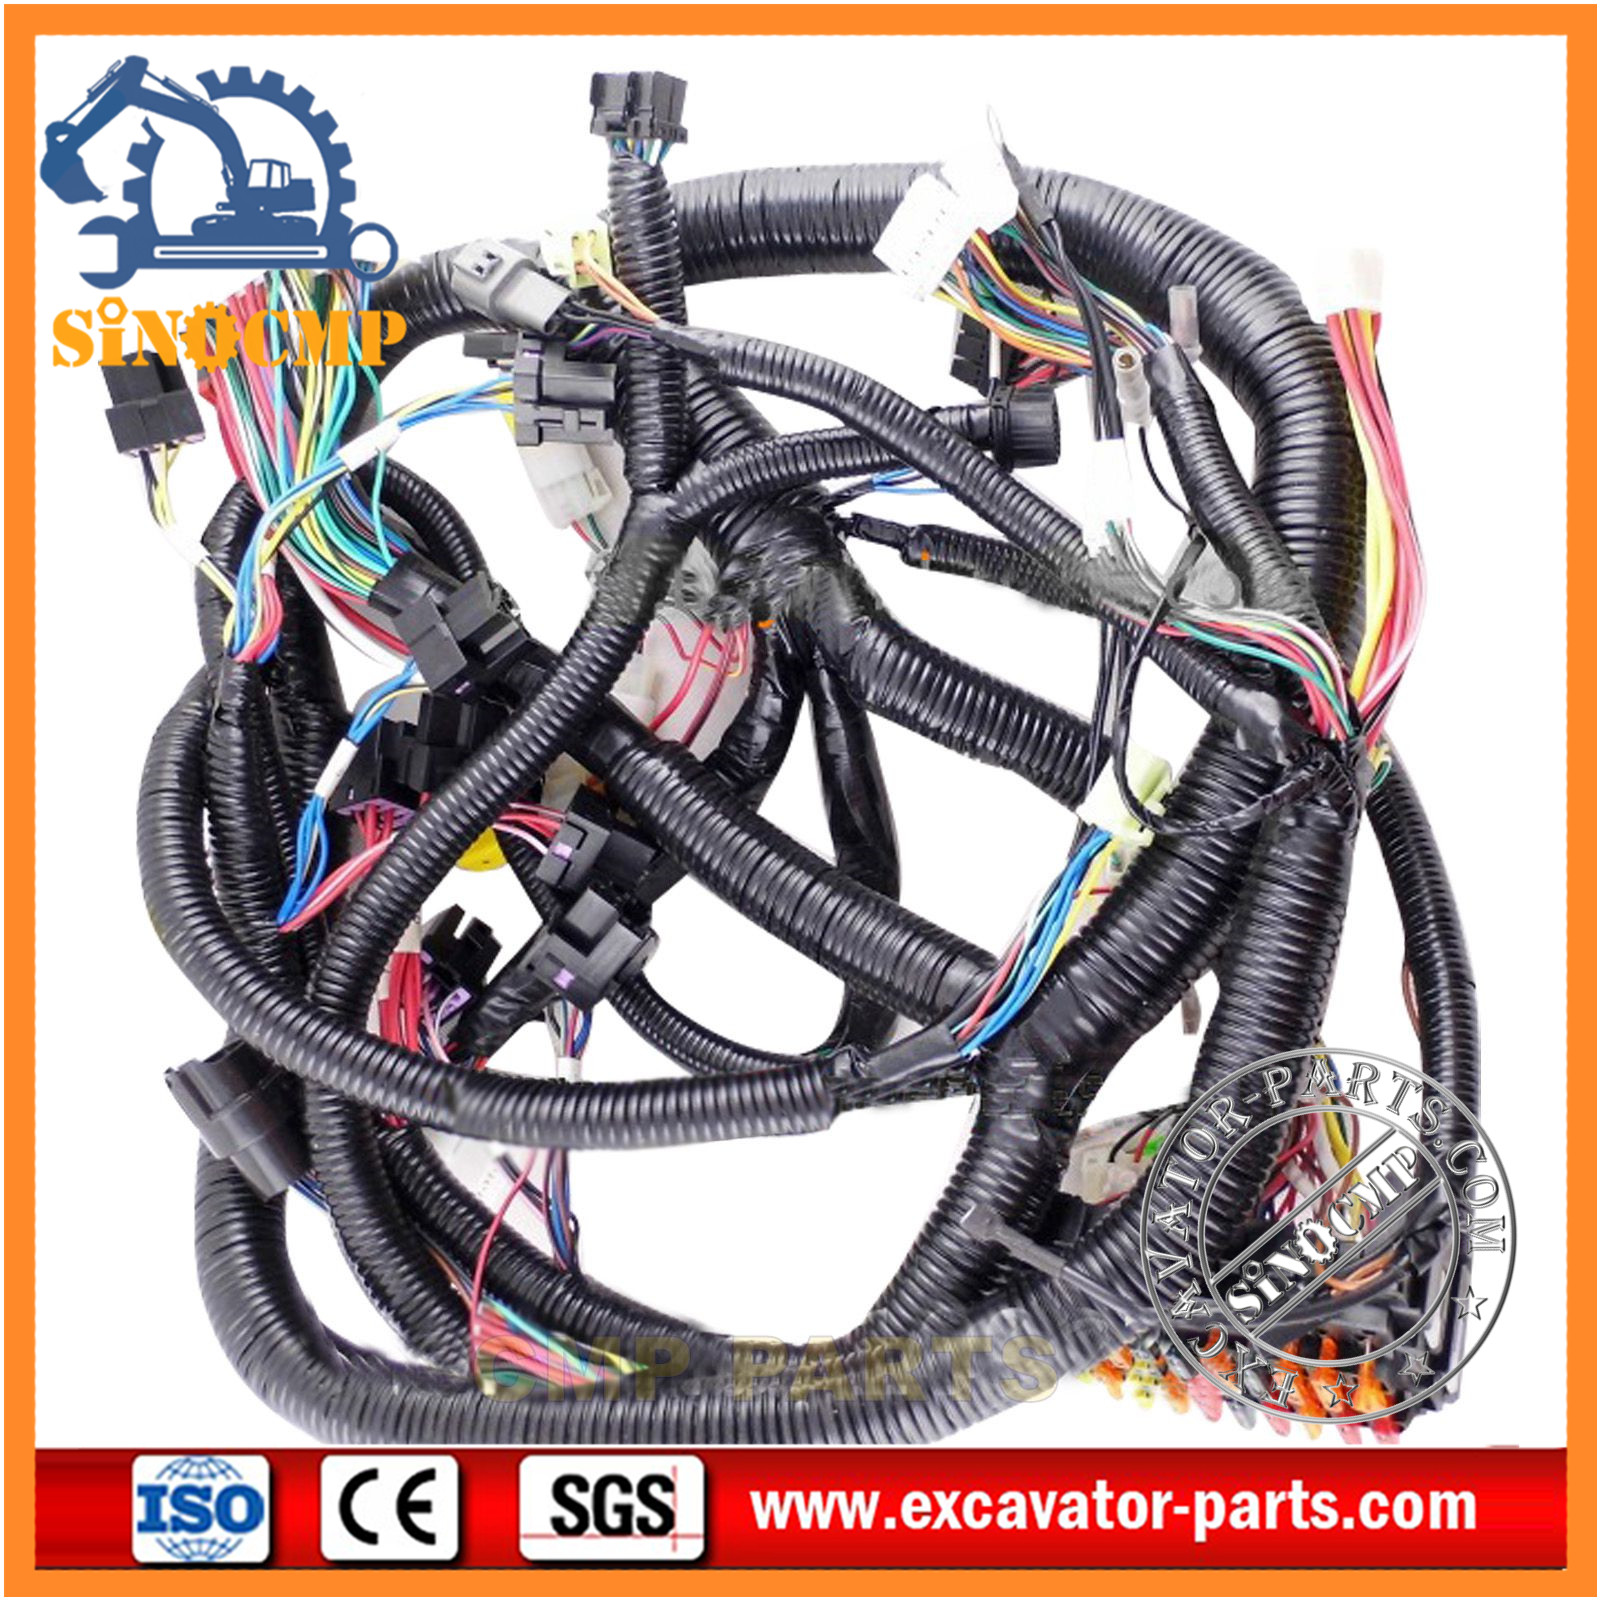 EX120 2 Hitachi Excavator Inner Cabin Wiring Harness 0001044 2 ebay 1 cabin wiring harness automotive wiring harness connectors \u2022 wiring 6 wire harness at nearapp.co